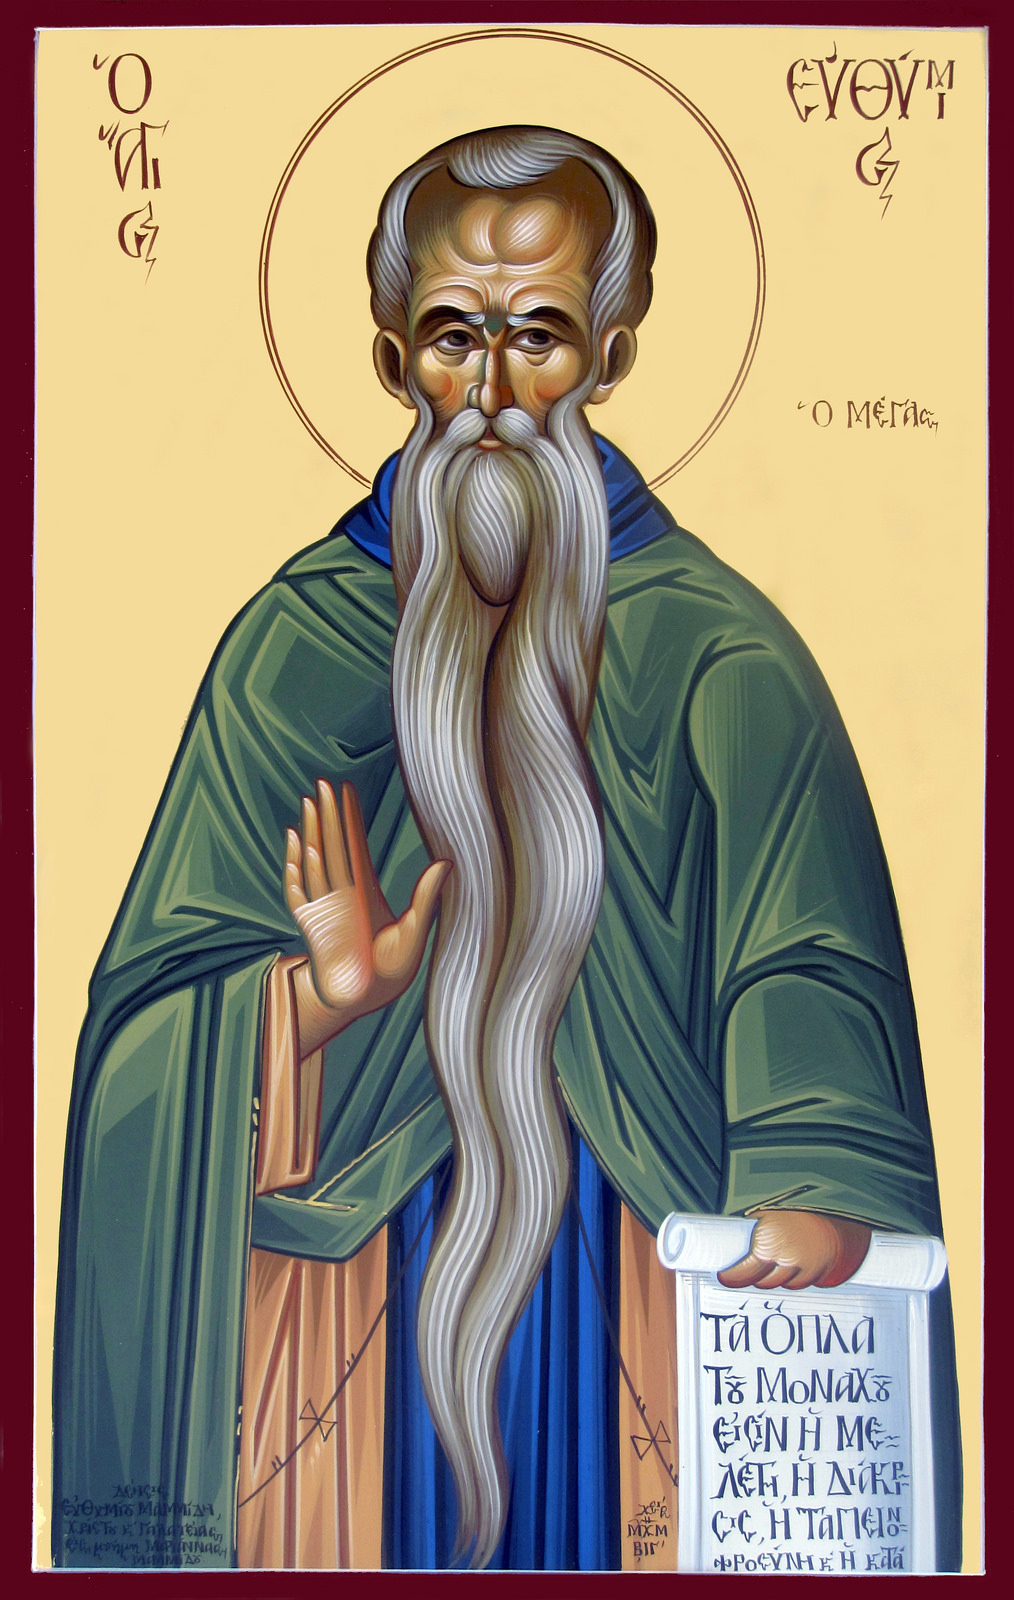 St. Evthymios the Great